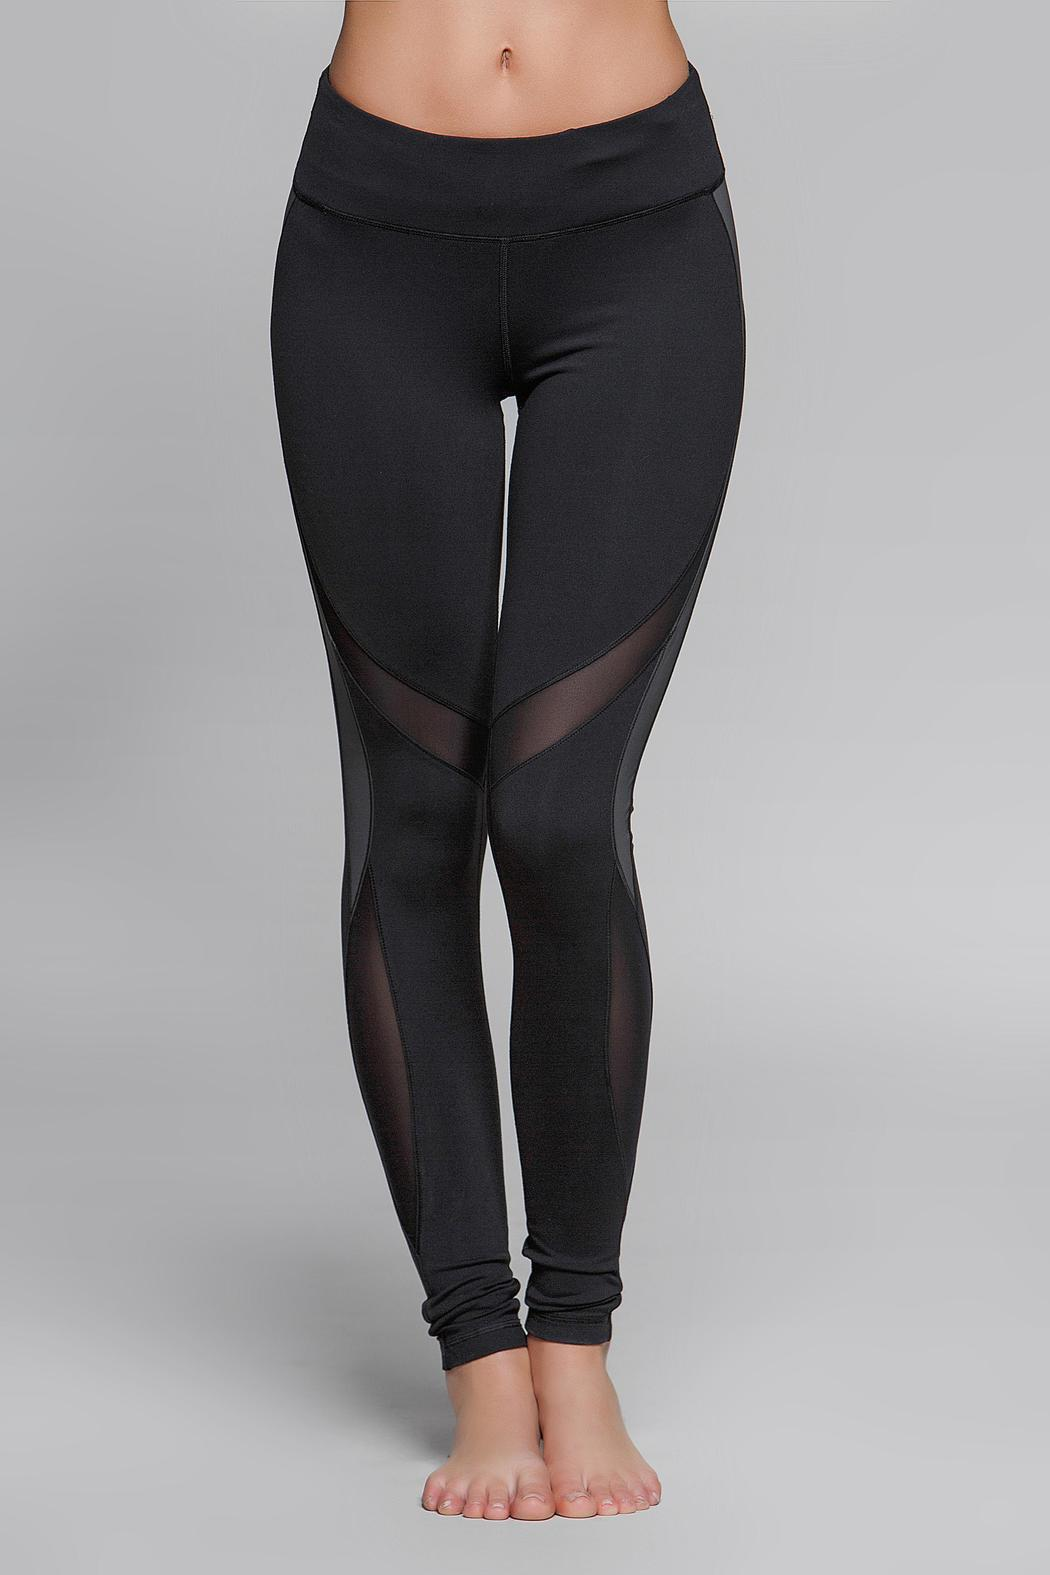 Titika Active Couture Eclipse Reflective Legging - Front Full Image